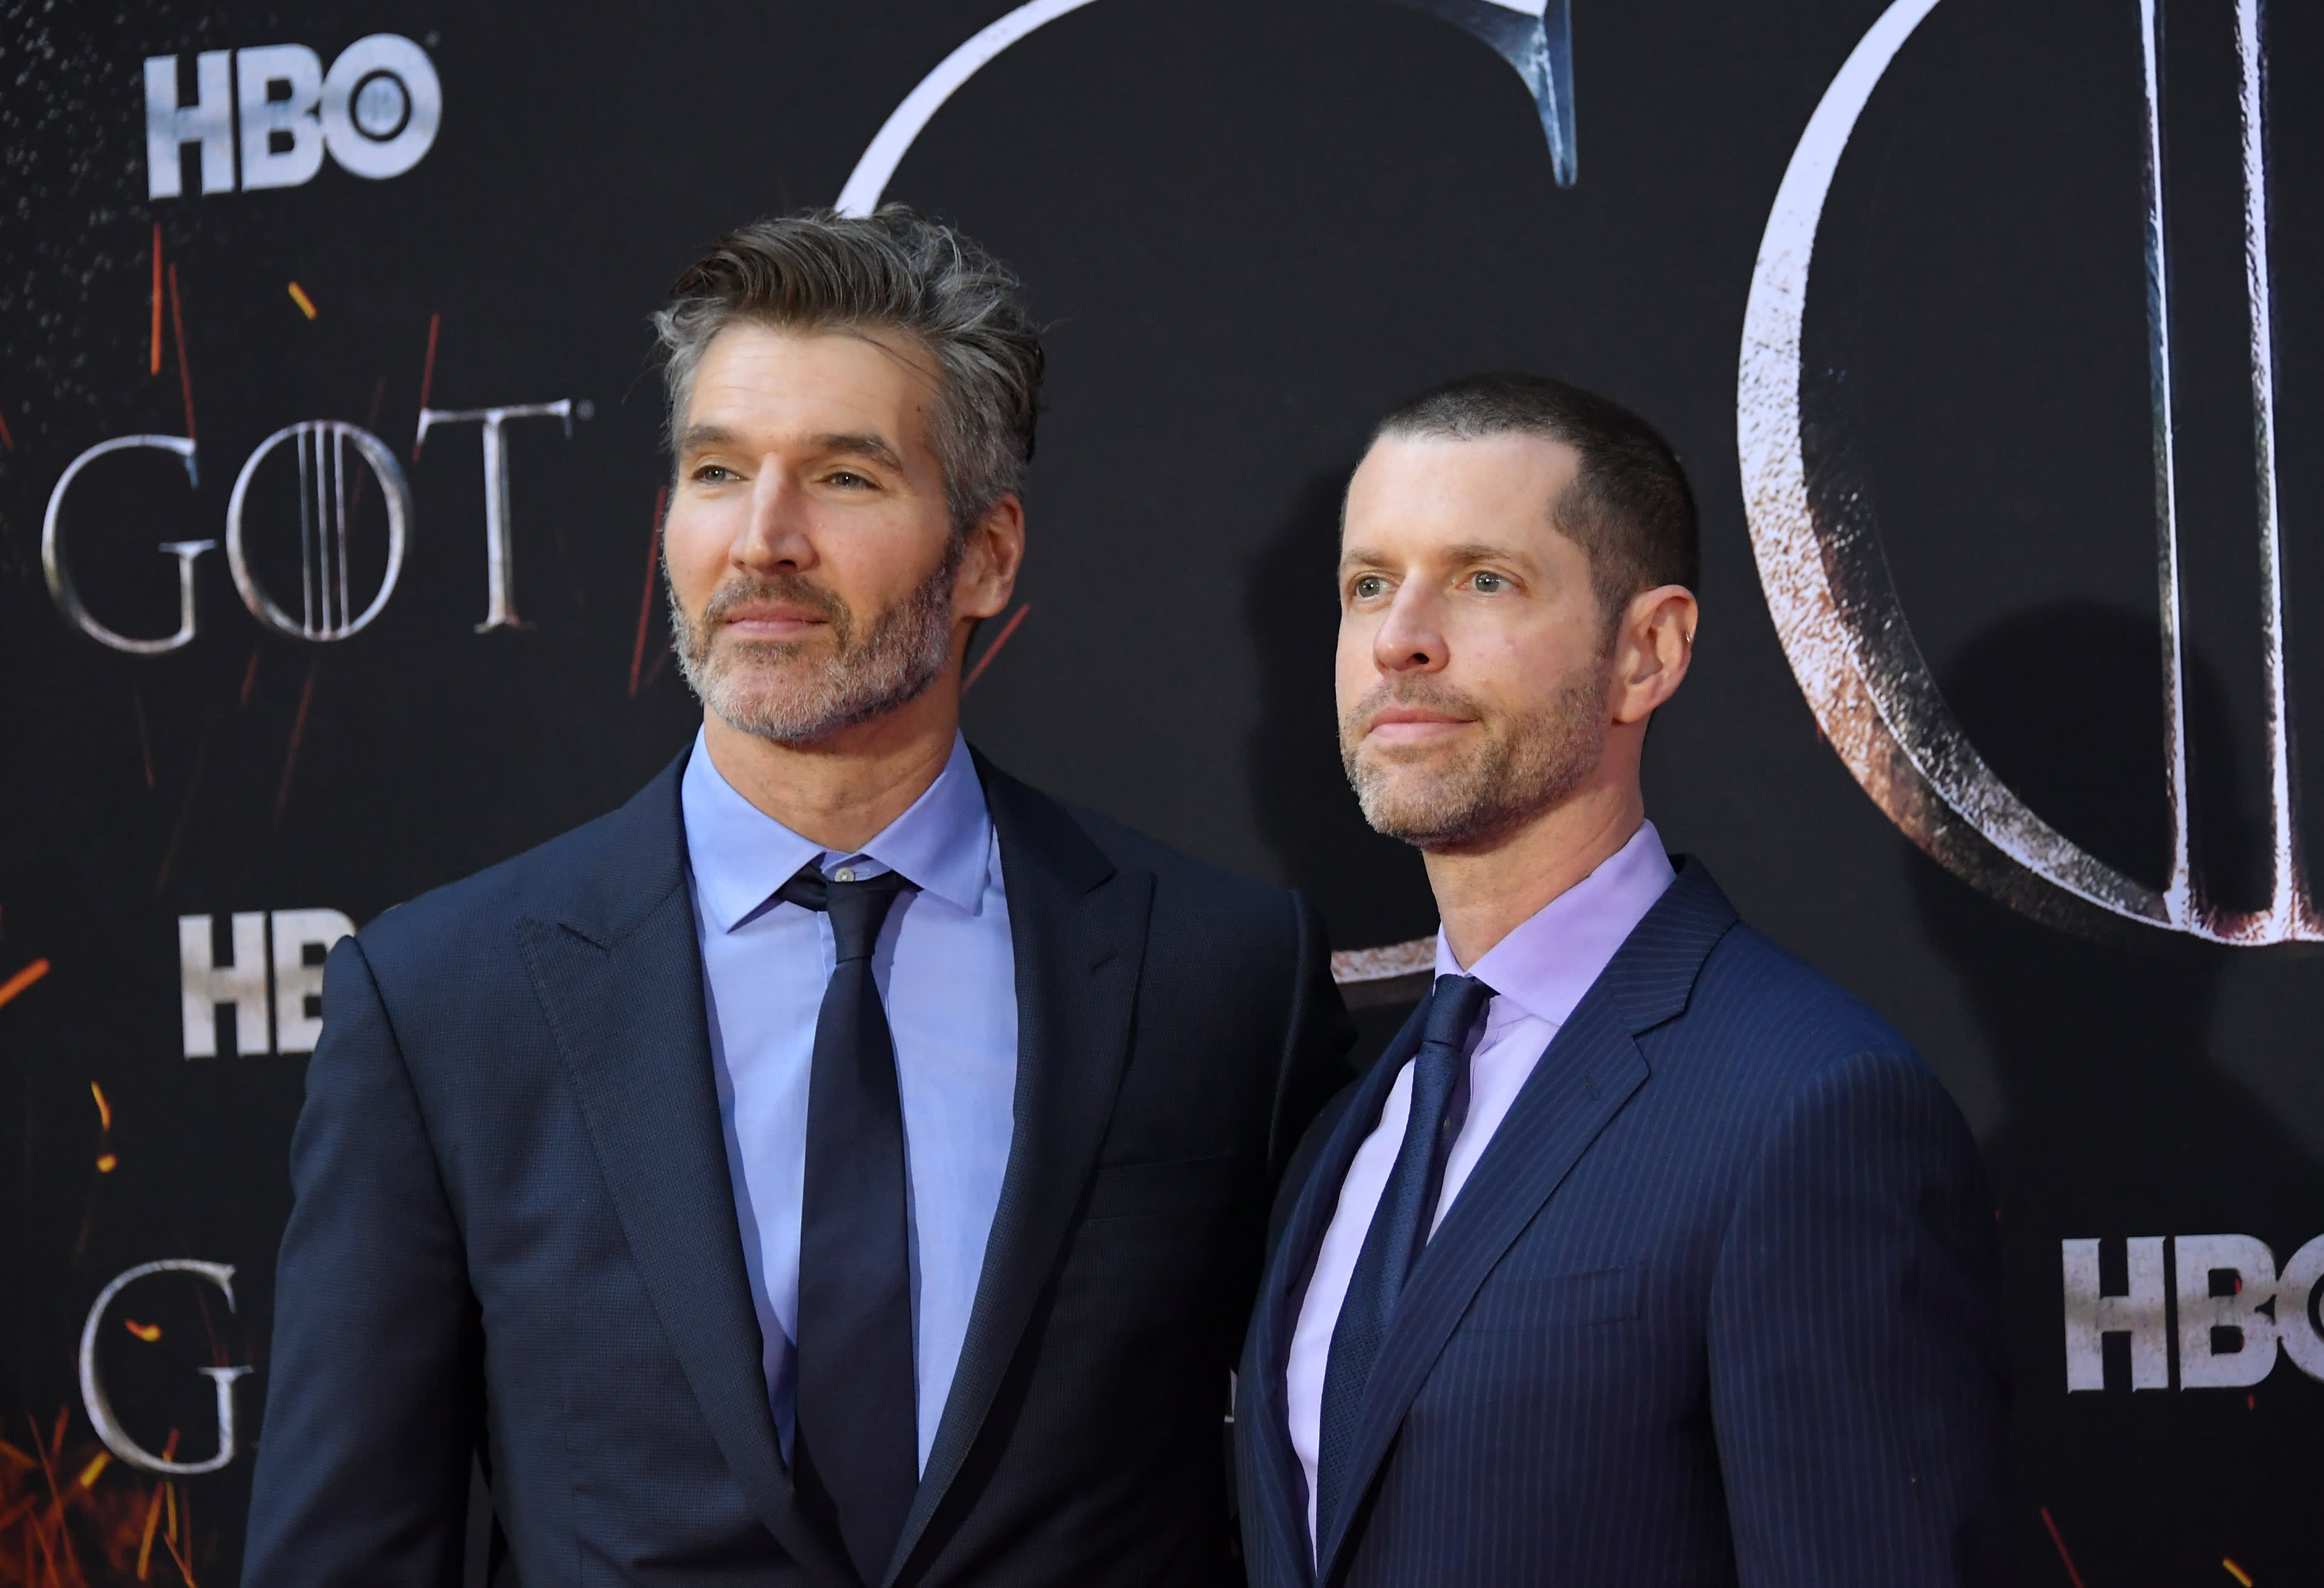 'Game of Thrones' showrunners David Benioff and D.B. Weiss reportedly no longer working on 'Star Wars' trilogy